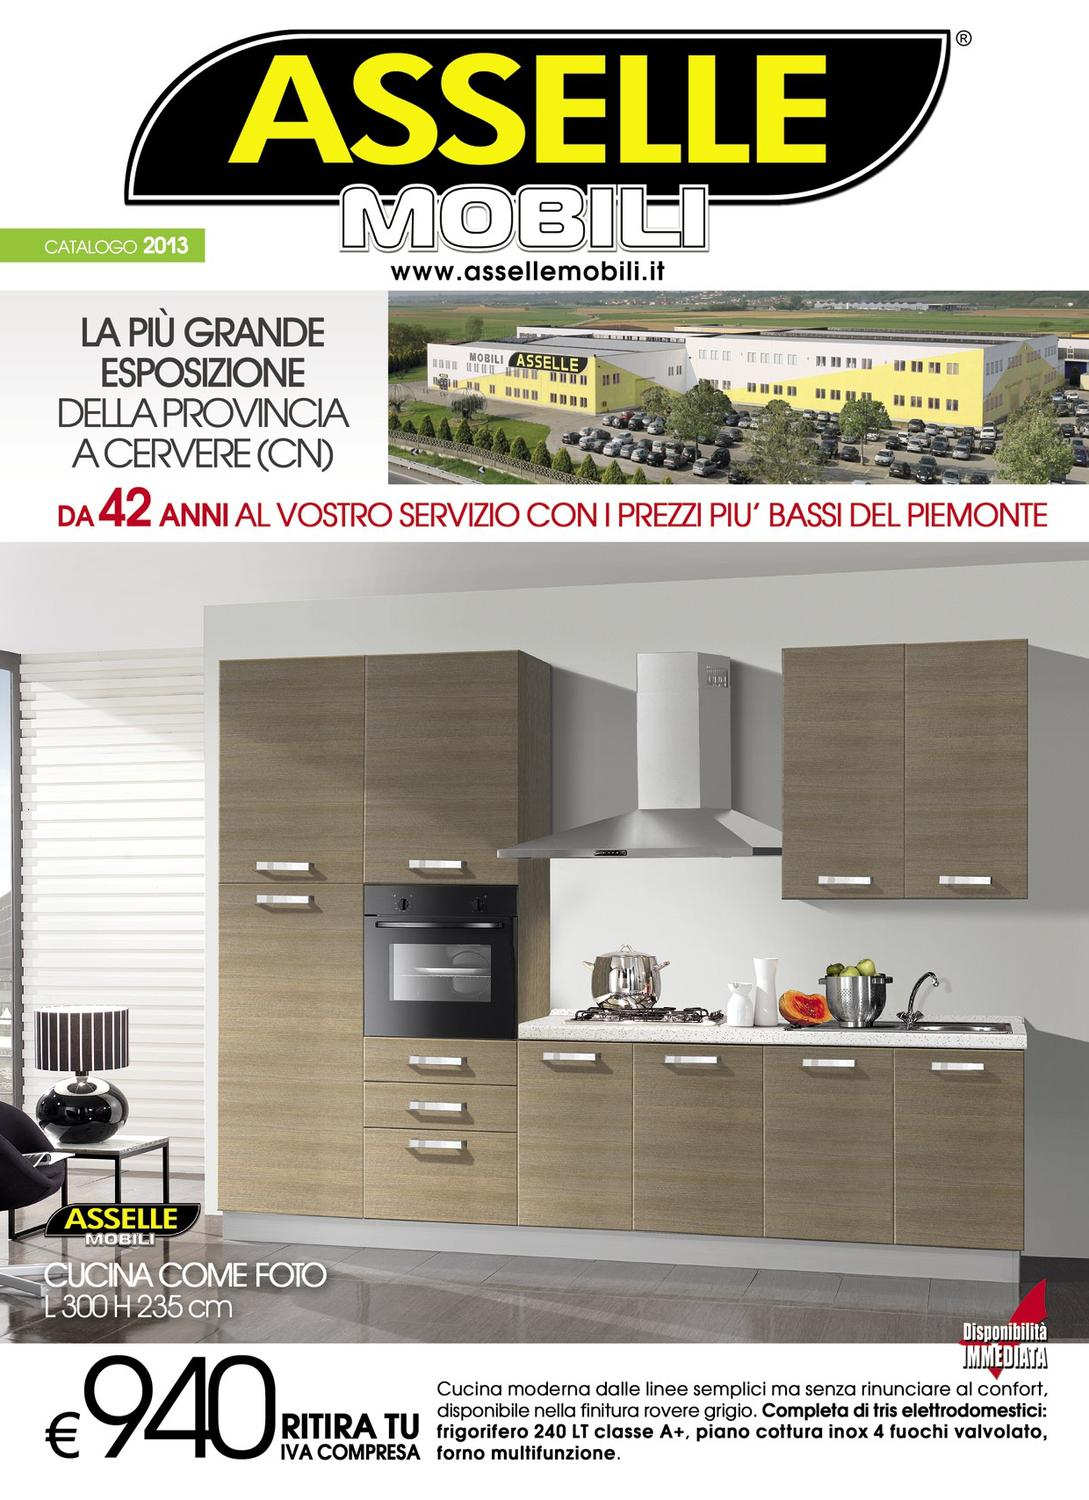 asselle mobili catalogo 2013 by asselle mobili issuu